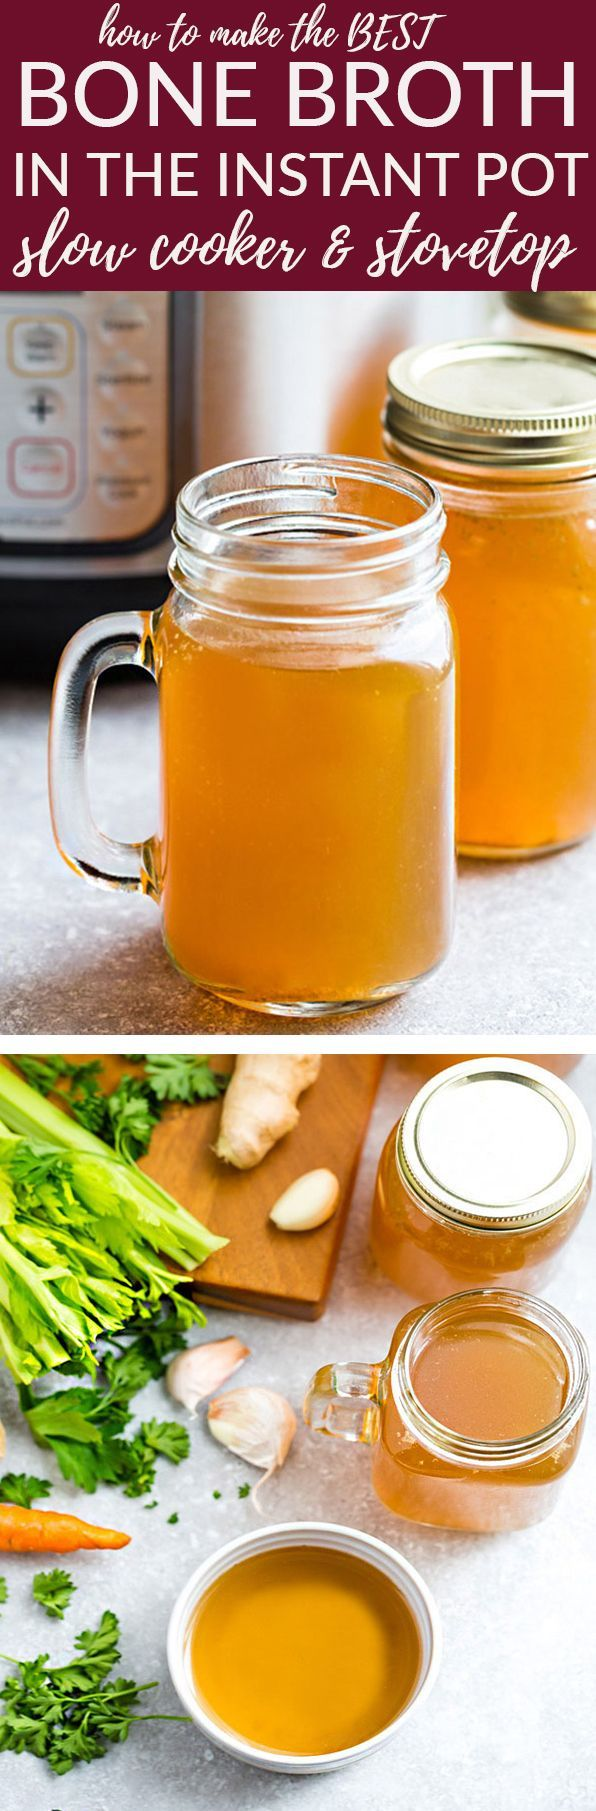 Homemade Bone Broth is healthy, nourishing and easy to make using your Instant P…